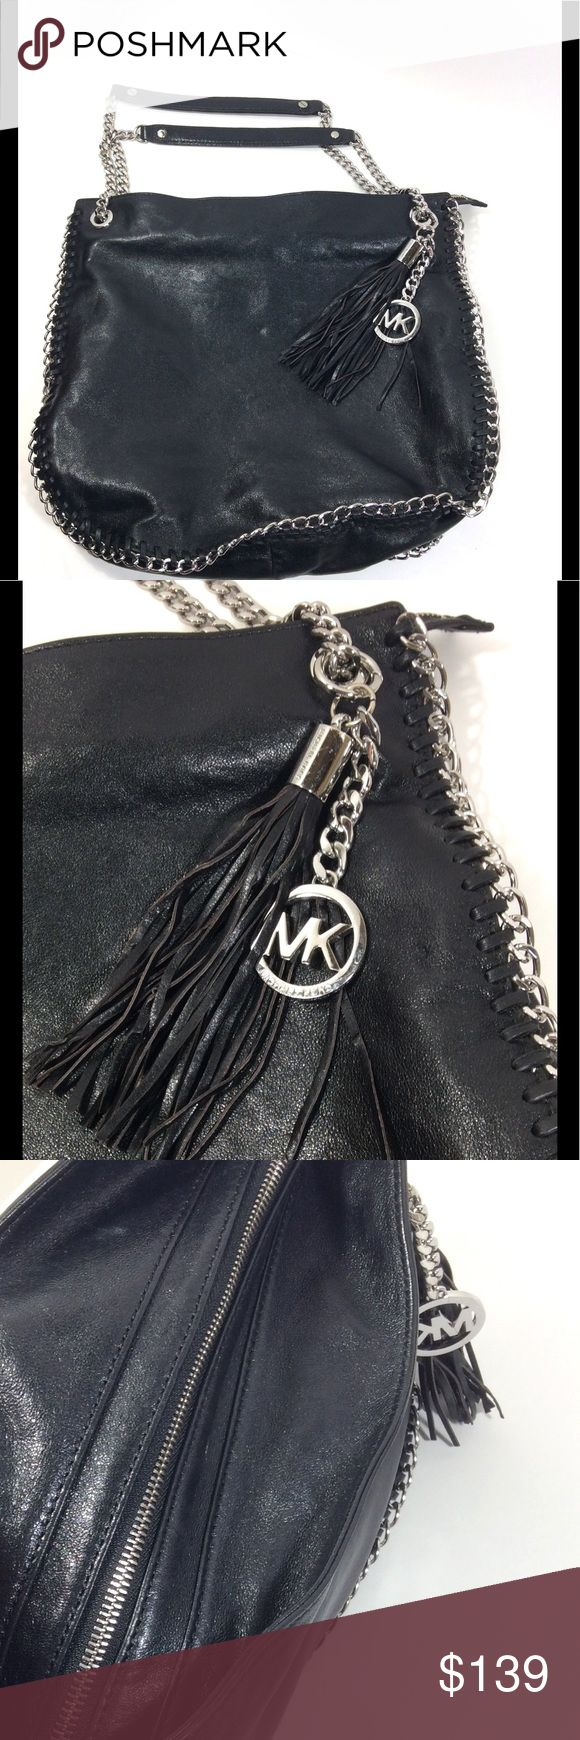 Michael Kors Chelsea Black Leather Bag Michael Kors Chelsea Black Leather Bag. Silver Hardware, gorgeous chain top handles, hanging MK logo charm with accent of leather tassel. Slouchy body with interwoven chain trim. This bag is gorgeous and in great condition. Normal scratching on hardware, tassel show minor use. Beautiful bag!! Michael Kors Bags Shoulder Bags